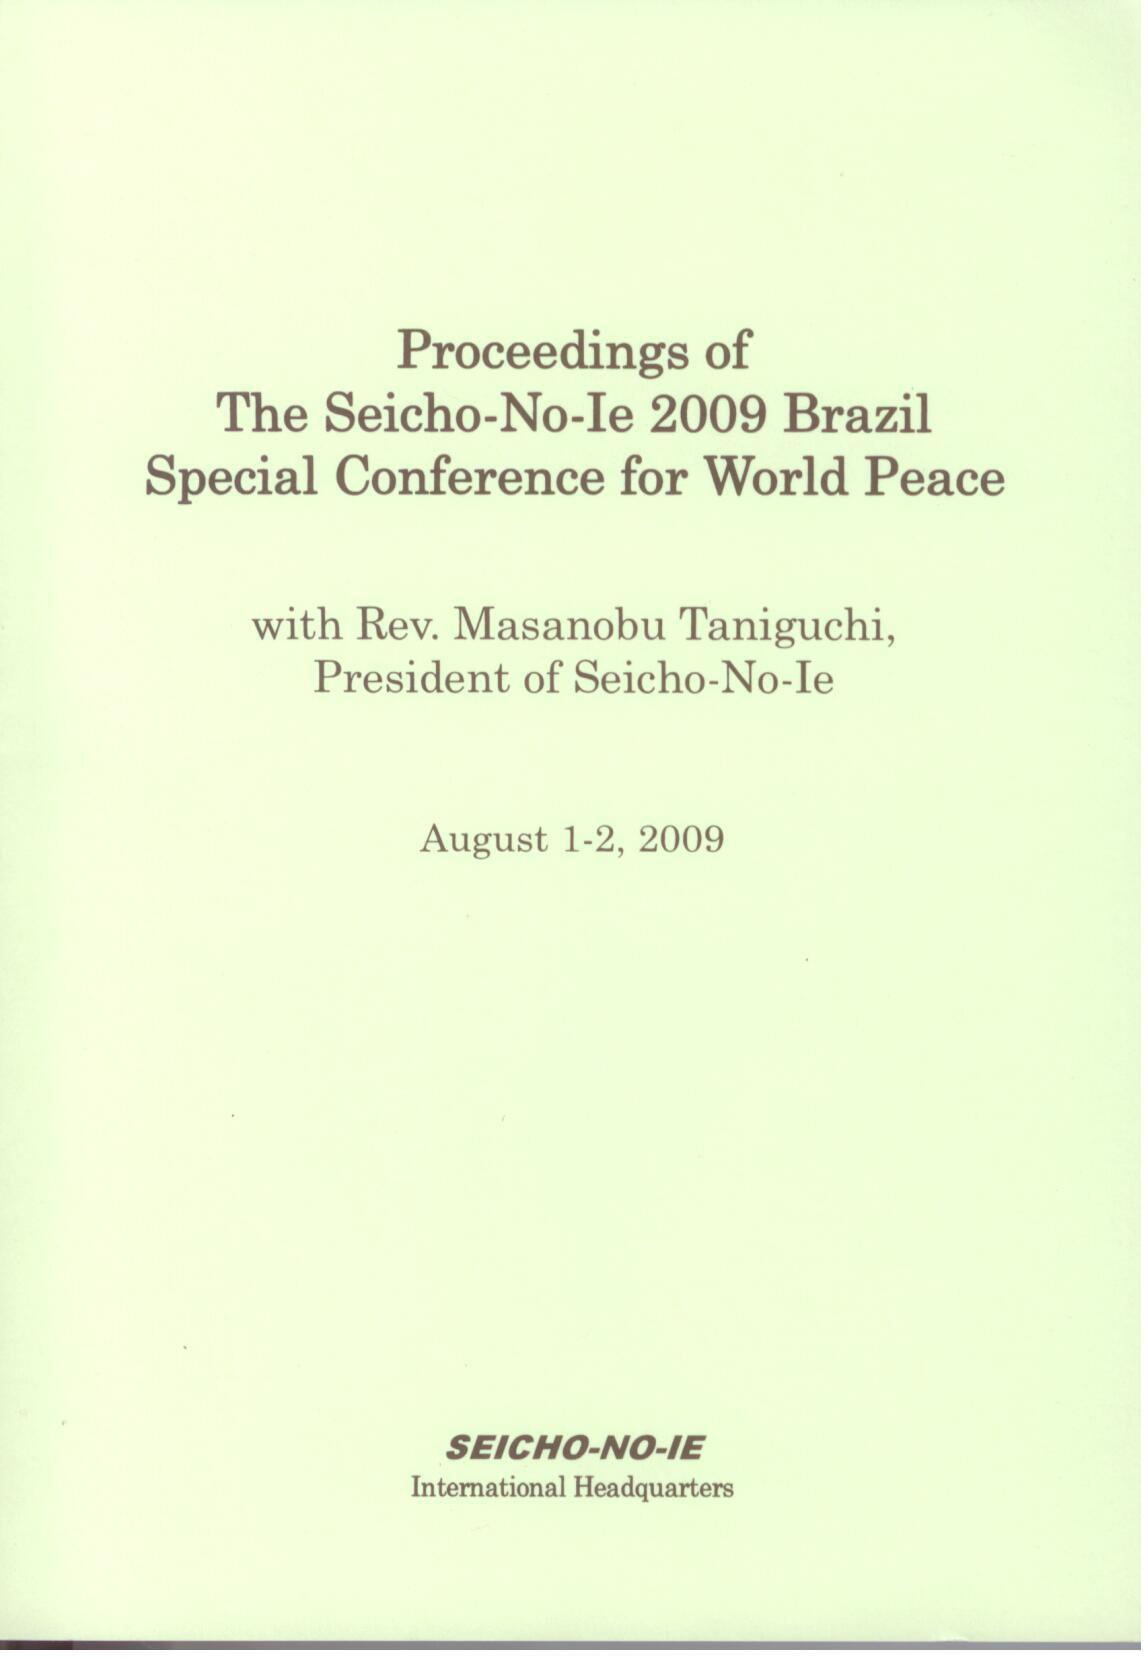 Proceedings 2009